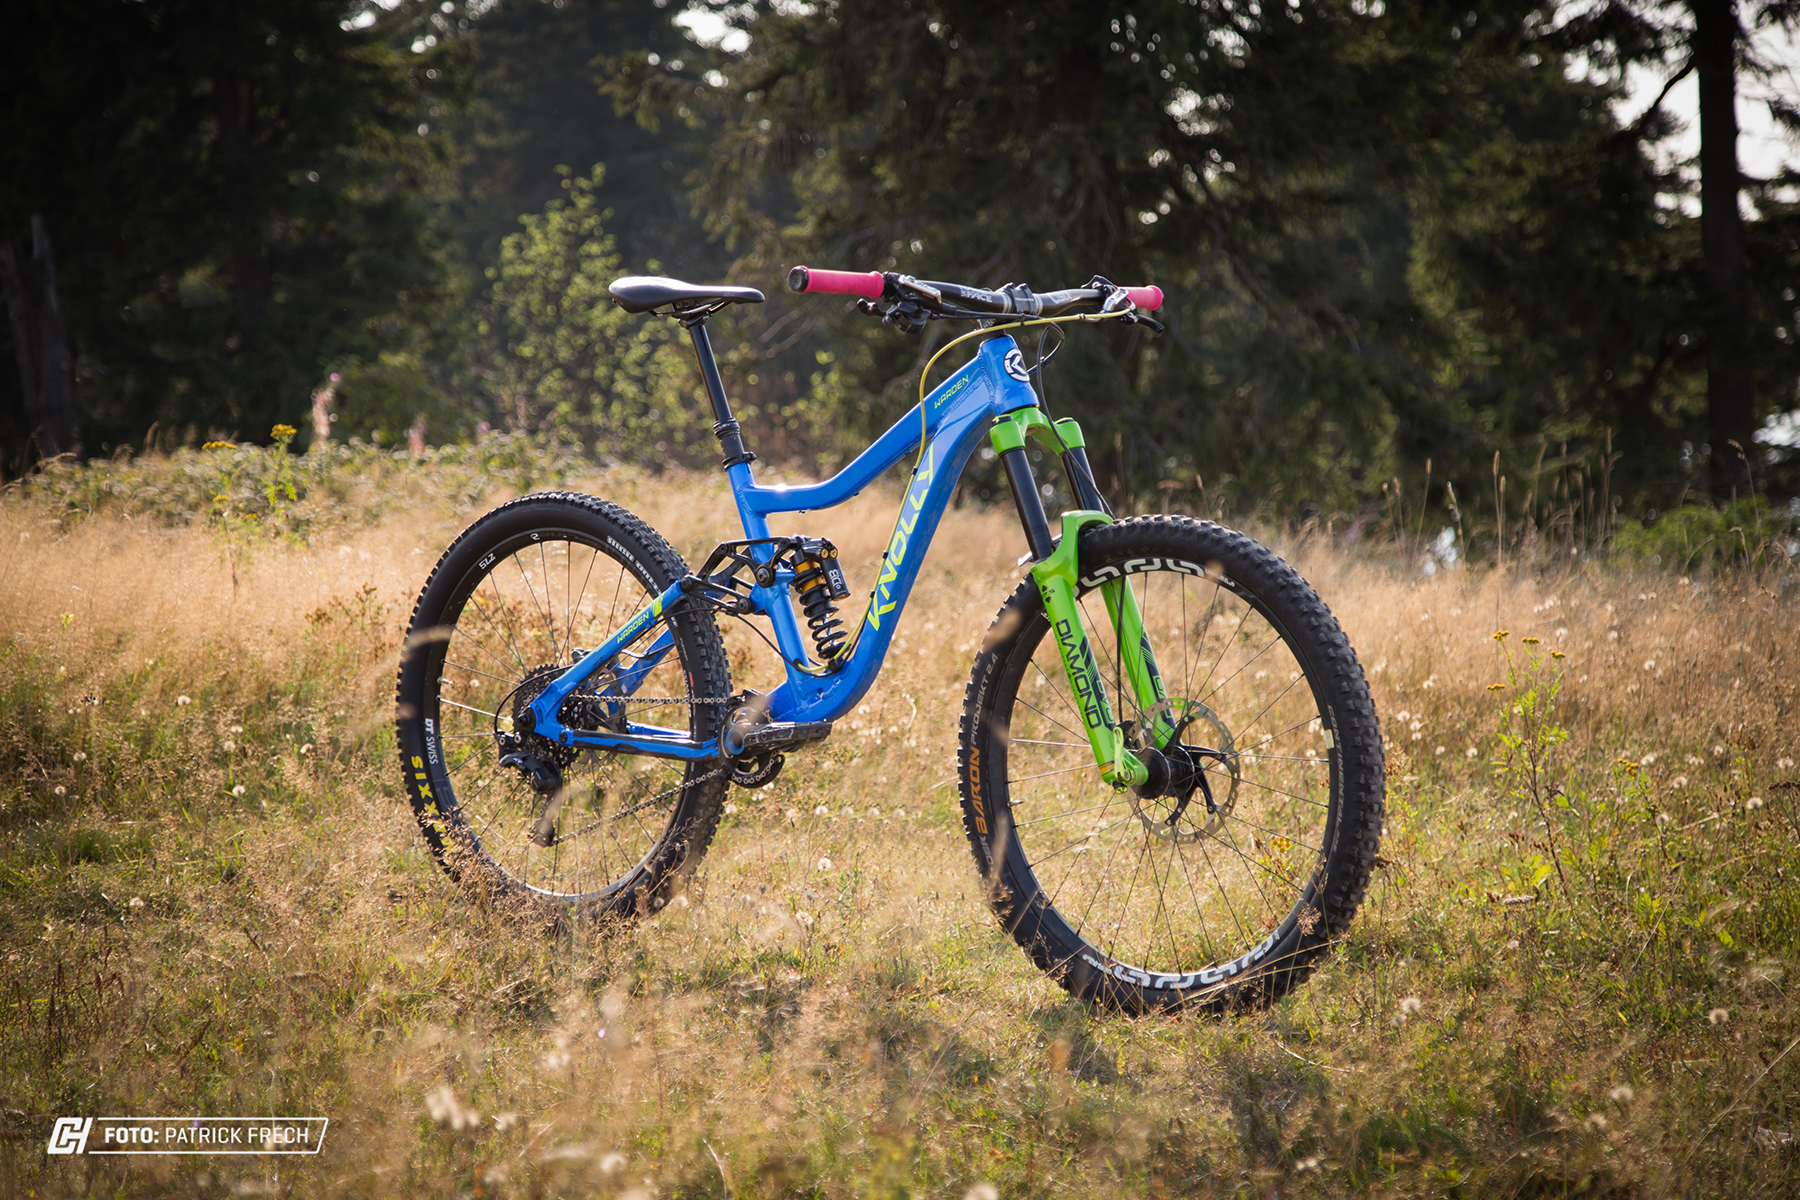 Der Cane Crrek Double Barrel Coil CS in unserem Testbike